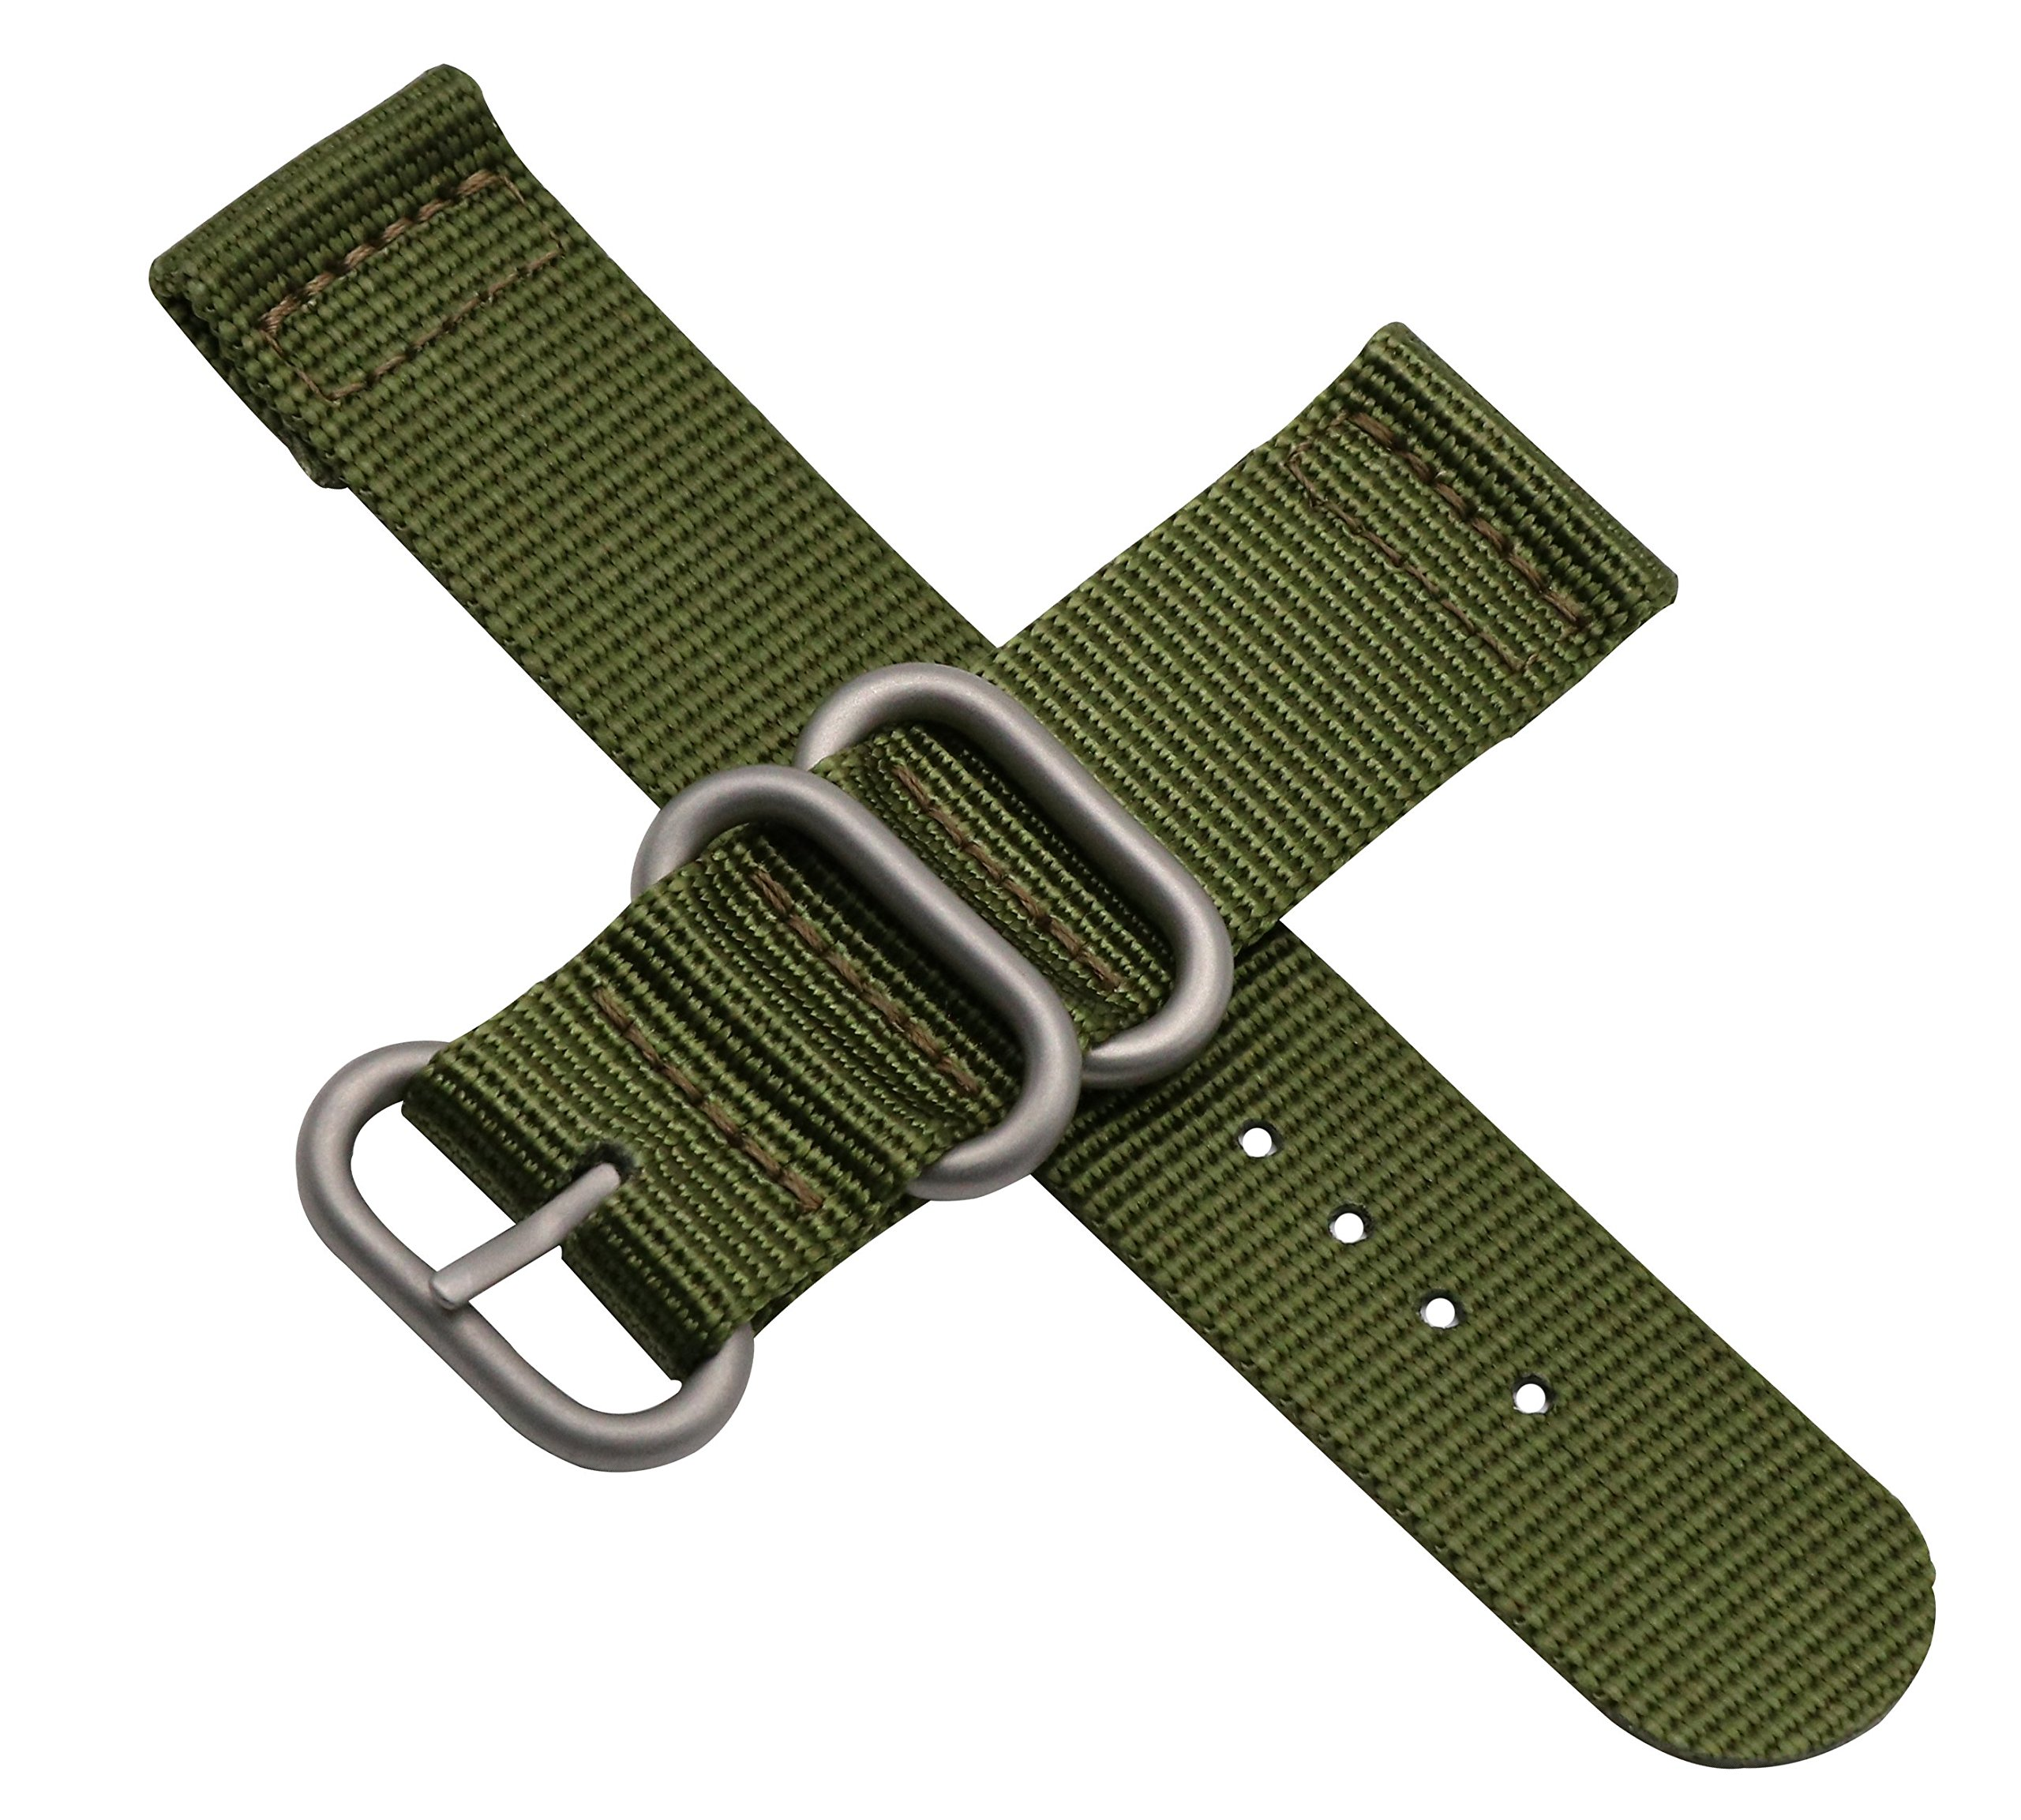 18mm Army Green High-end Nato style Ballistic Nylon Canvas Watch Band Strap Replacement for Men Braided